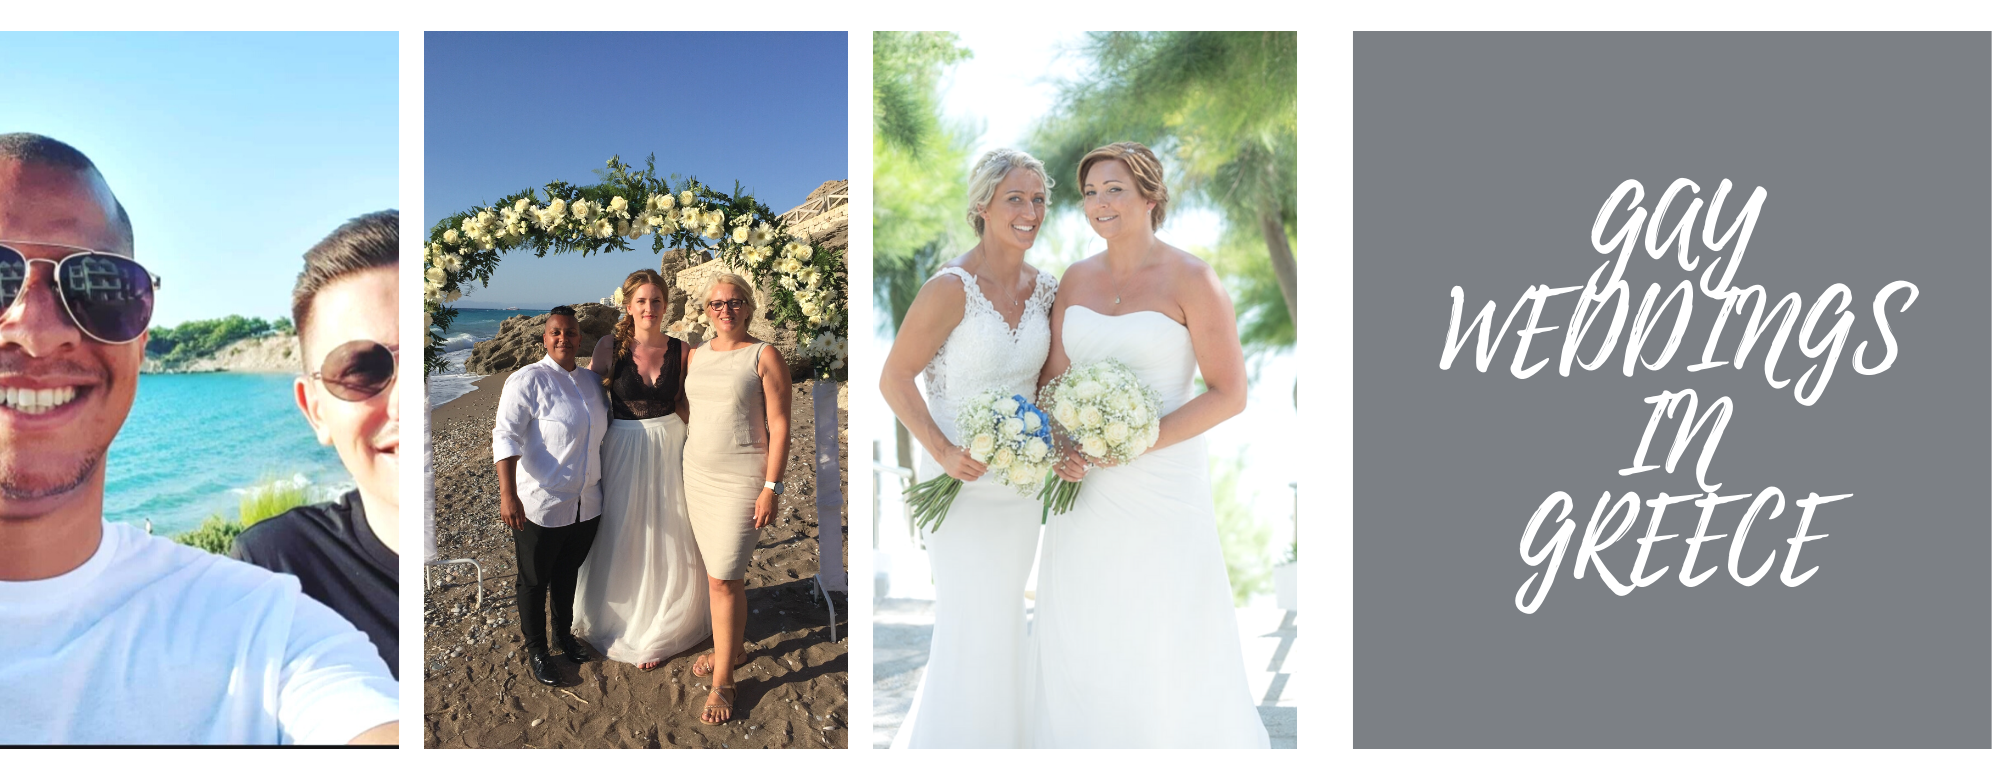 Montage of gay couples for gay weddings in Greece